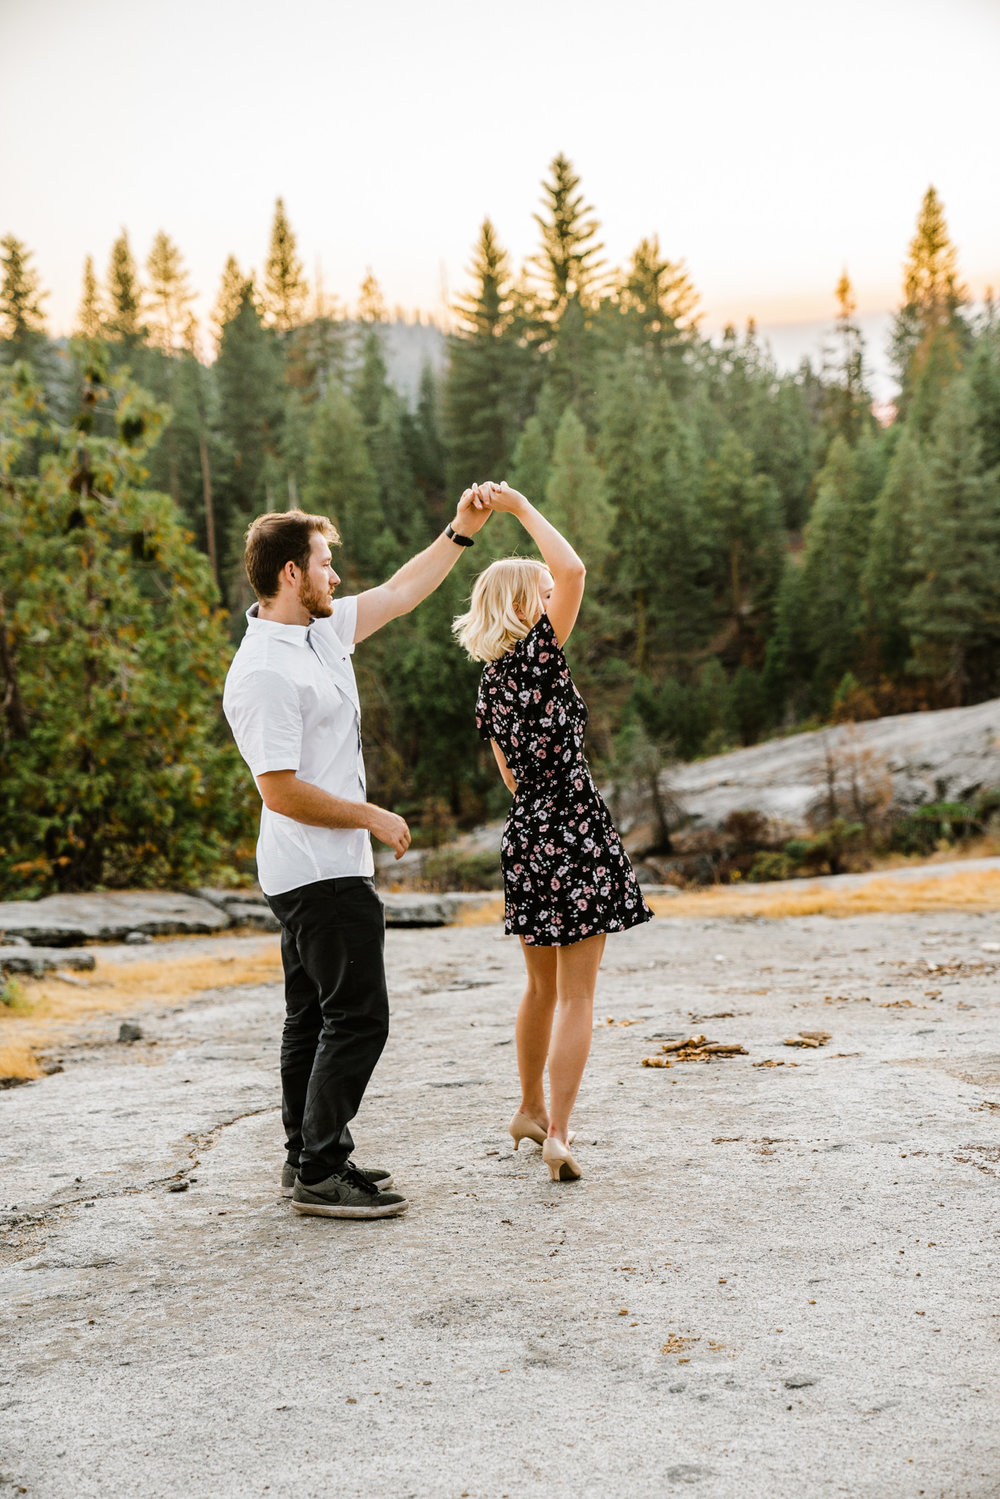 Shaver Lake Engagement Portraits - Meghan and Clay -  by Bessie Young Photography 2018 A7R2-252.jpg